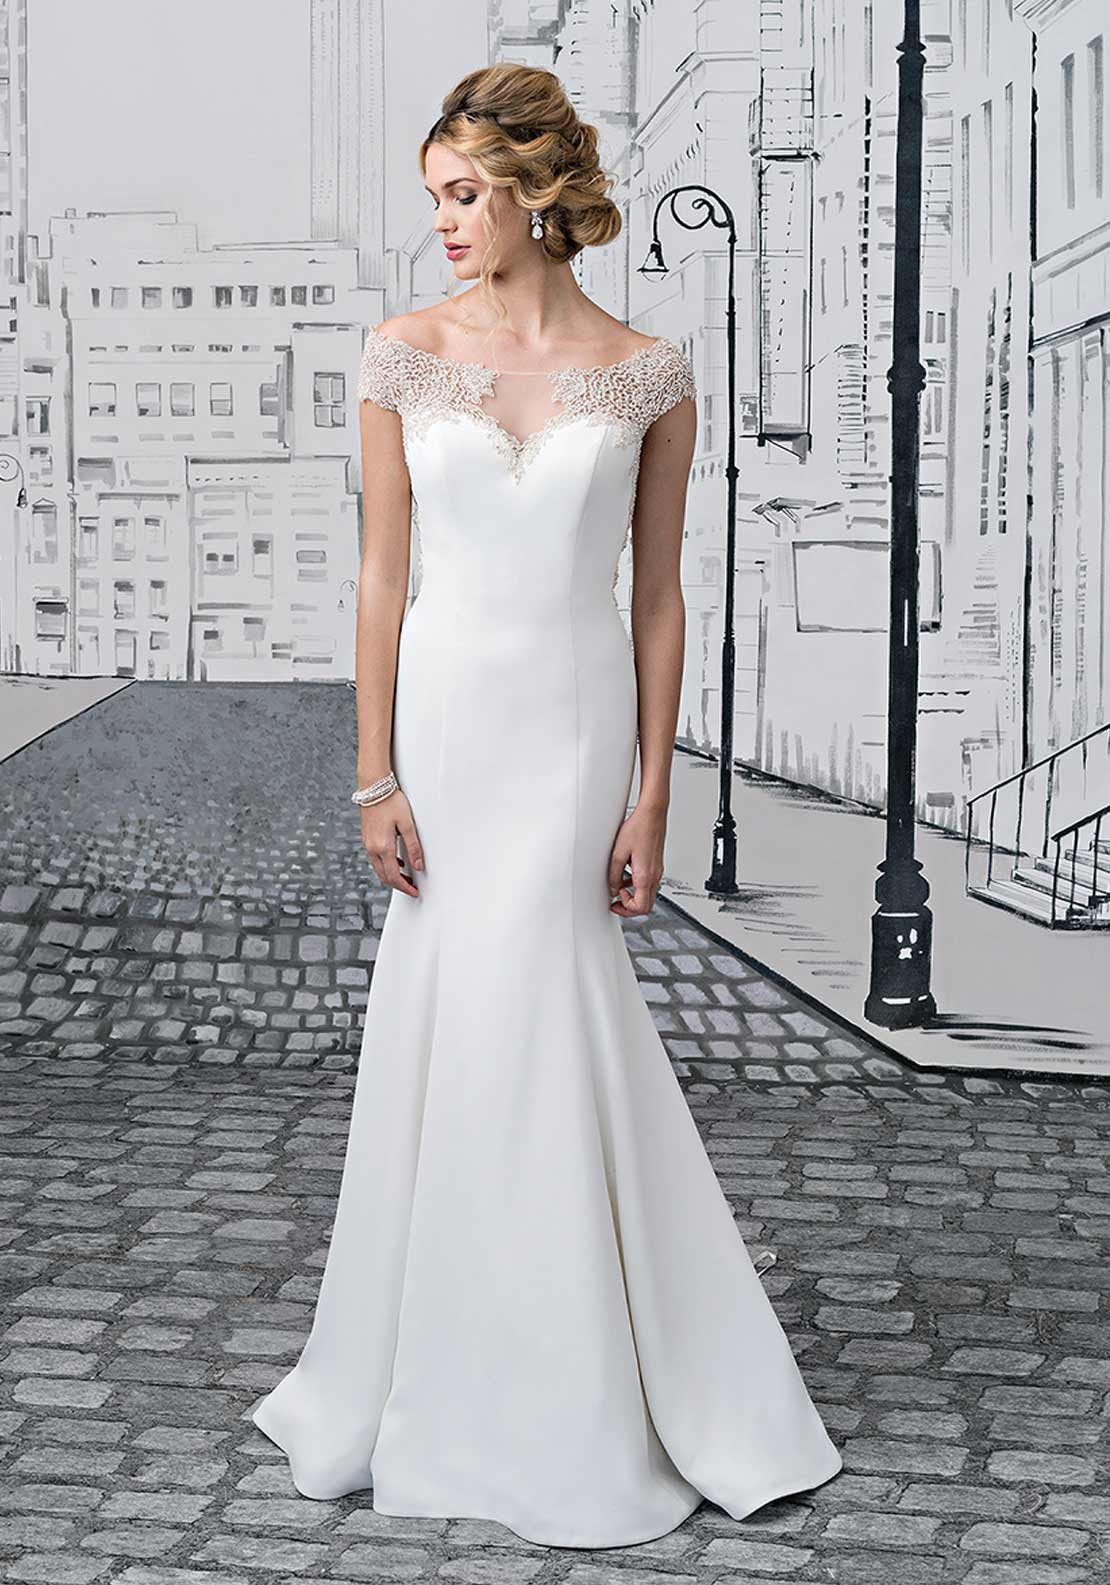 Justin Alexander 8878 Wedding Dress UK Size 12